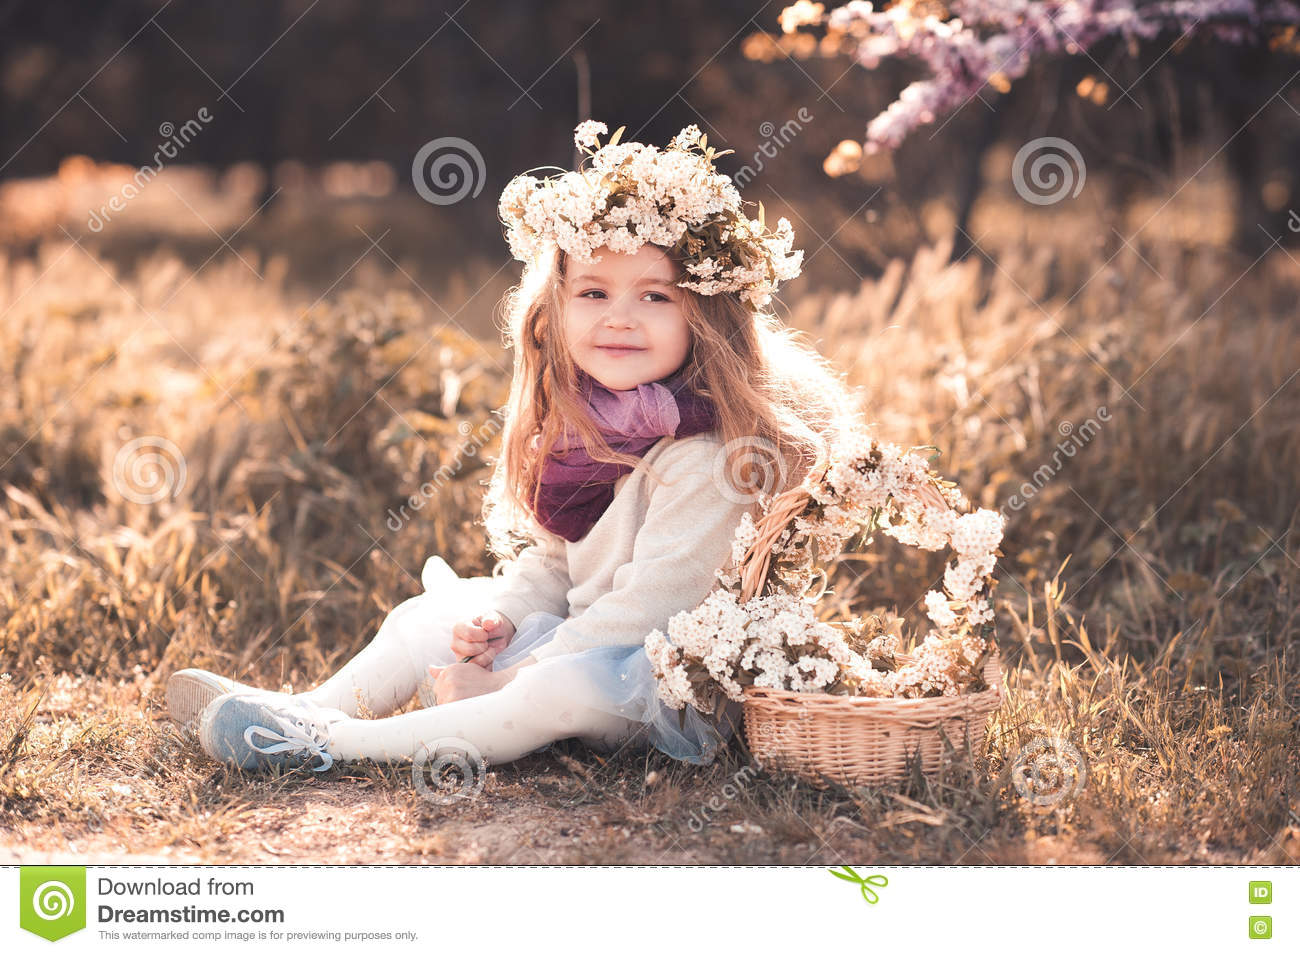 Cute Baby Girl With Flowers Outdoors Stock Image Image Of Girl